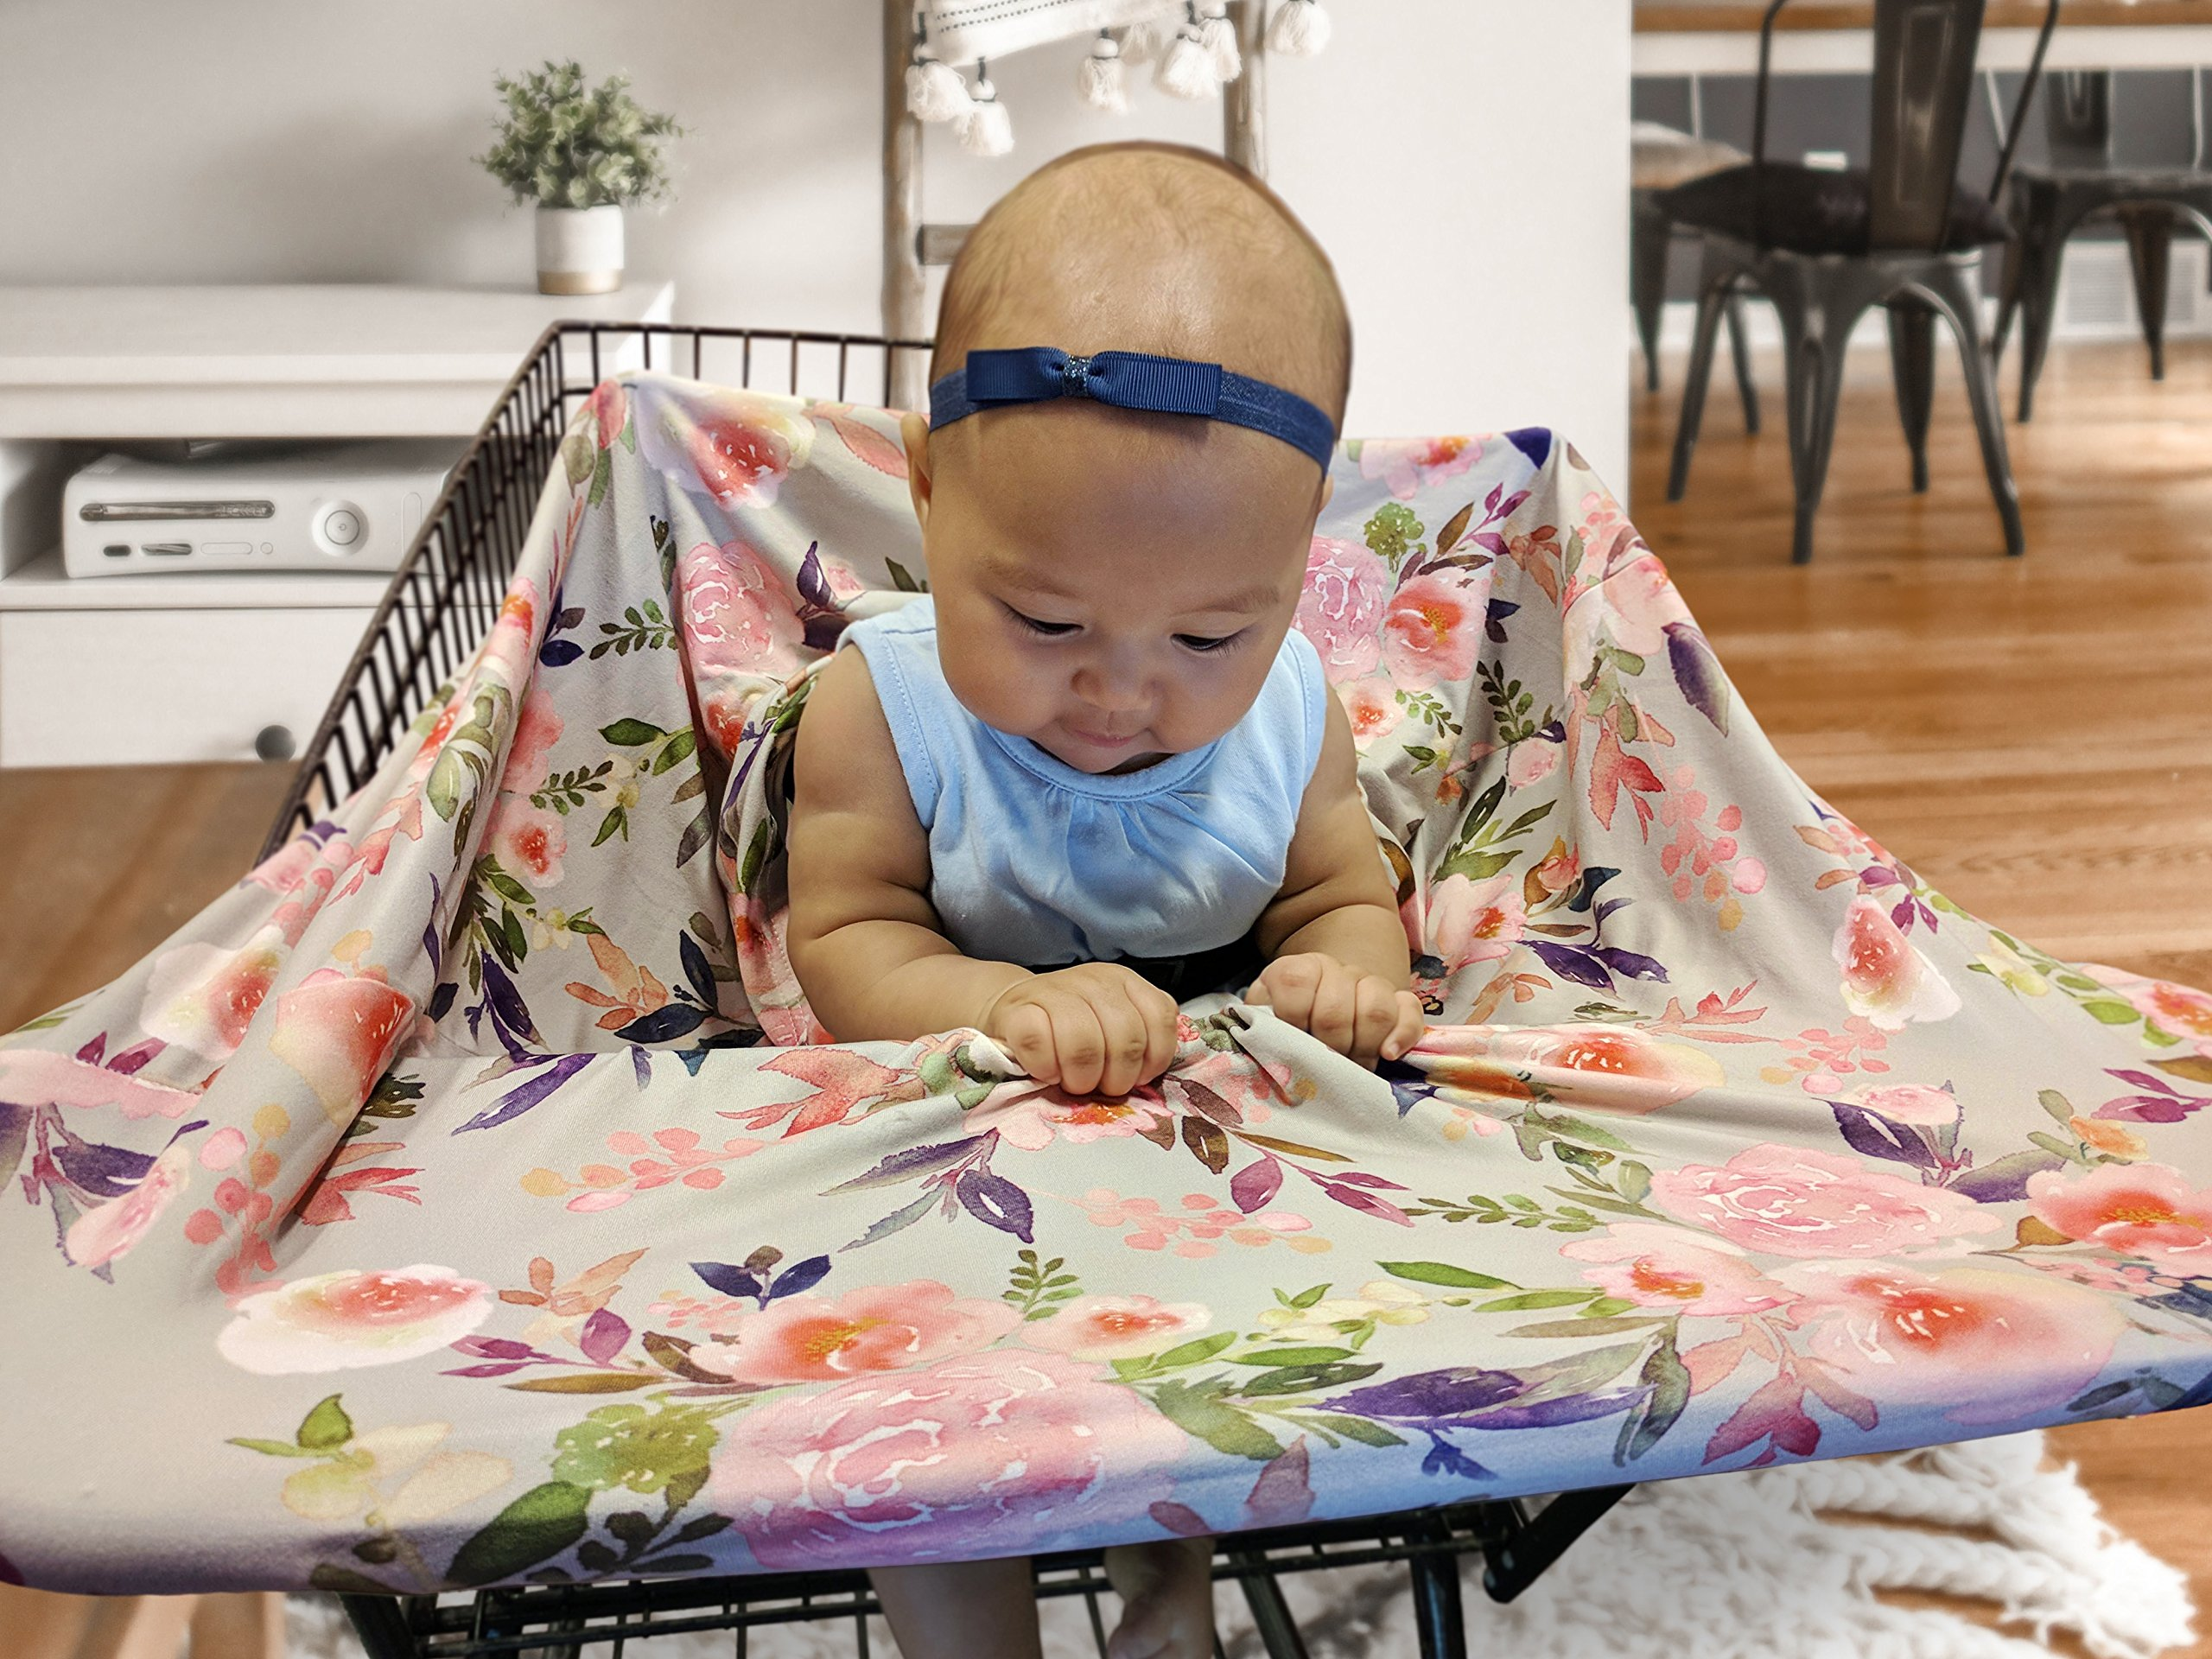 Premium Soft, Stretchy, and Spacious 4 in 1 Multi-Use Cover for Nursing, Baby Car Seat, Stroller, Scarf, and Shopping Cart - Best Gifts by Pobibaby (Grace) by Pobibaby (Image #7)